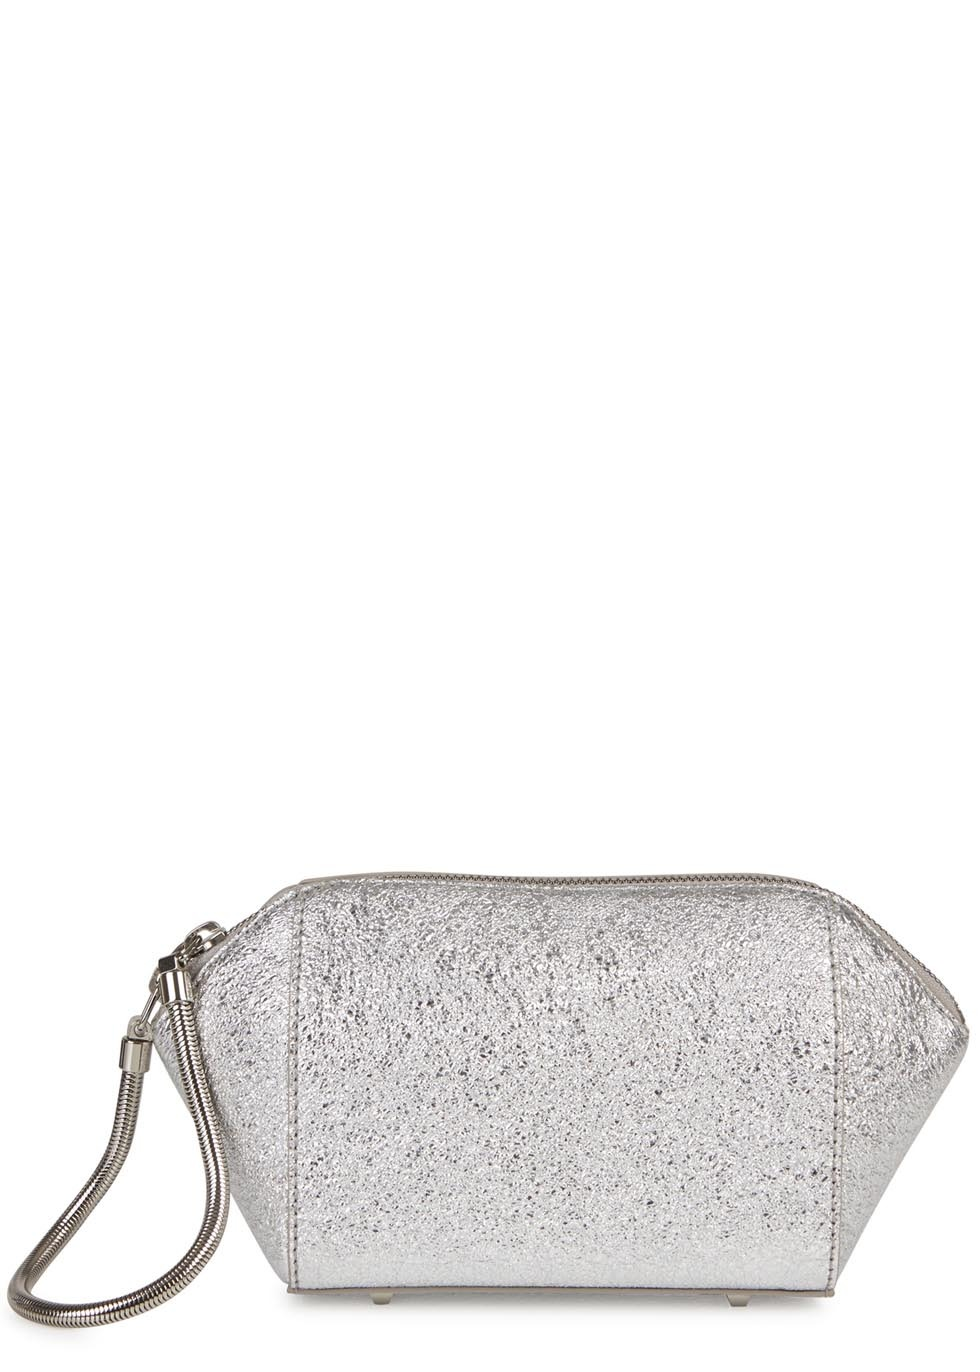 Chastity Silver Foiled Leather Clutch - predominant colour: silver; occasions: evening, occasion; type of pattern: standard; style: clutch; length: hand carry; size: standard; material: leather; pattern: plain; finish: metallic; trends: shimmery metallics; season: s/s 2014